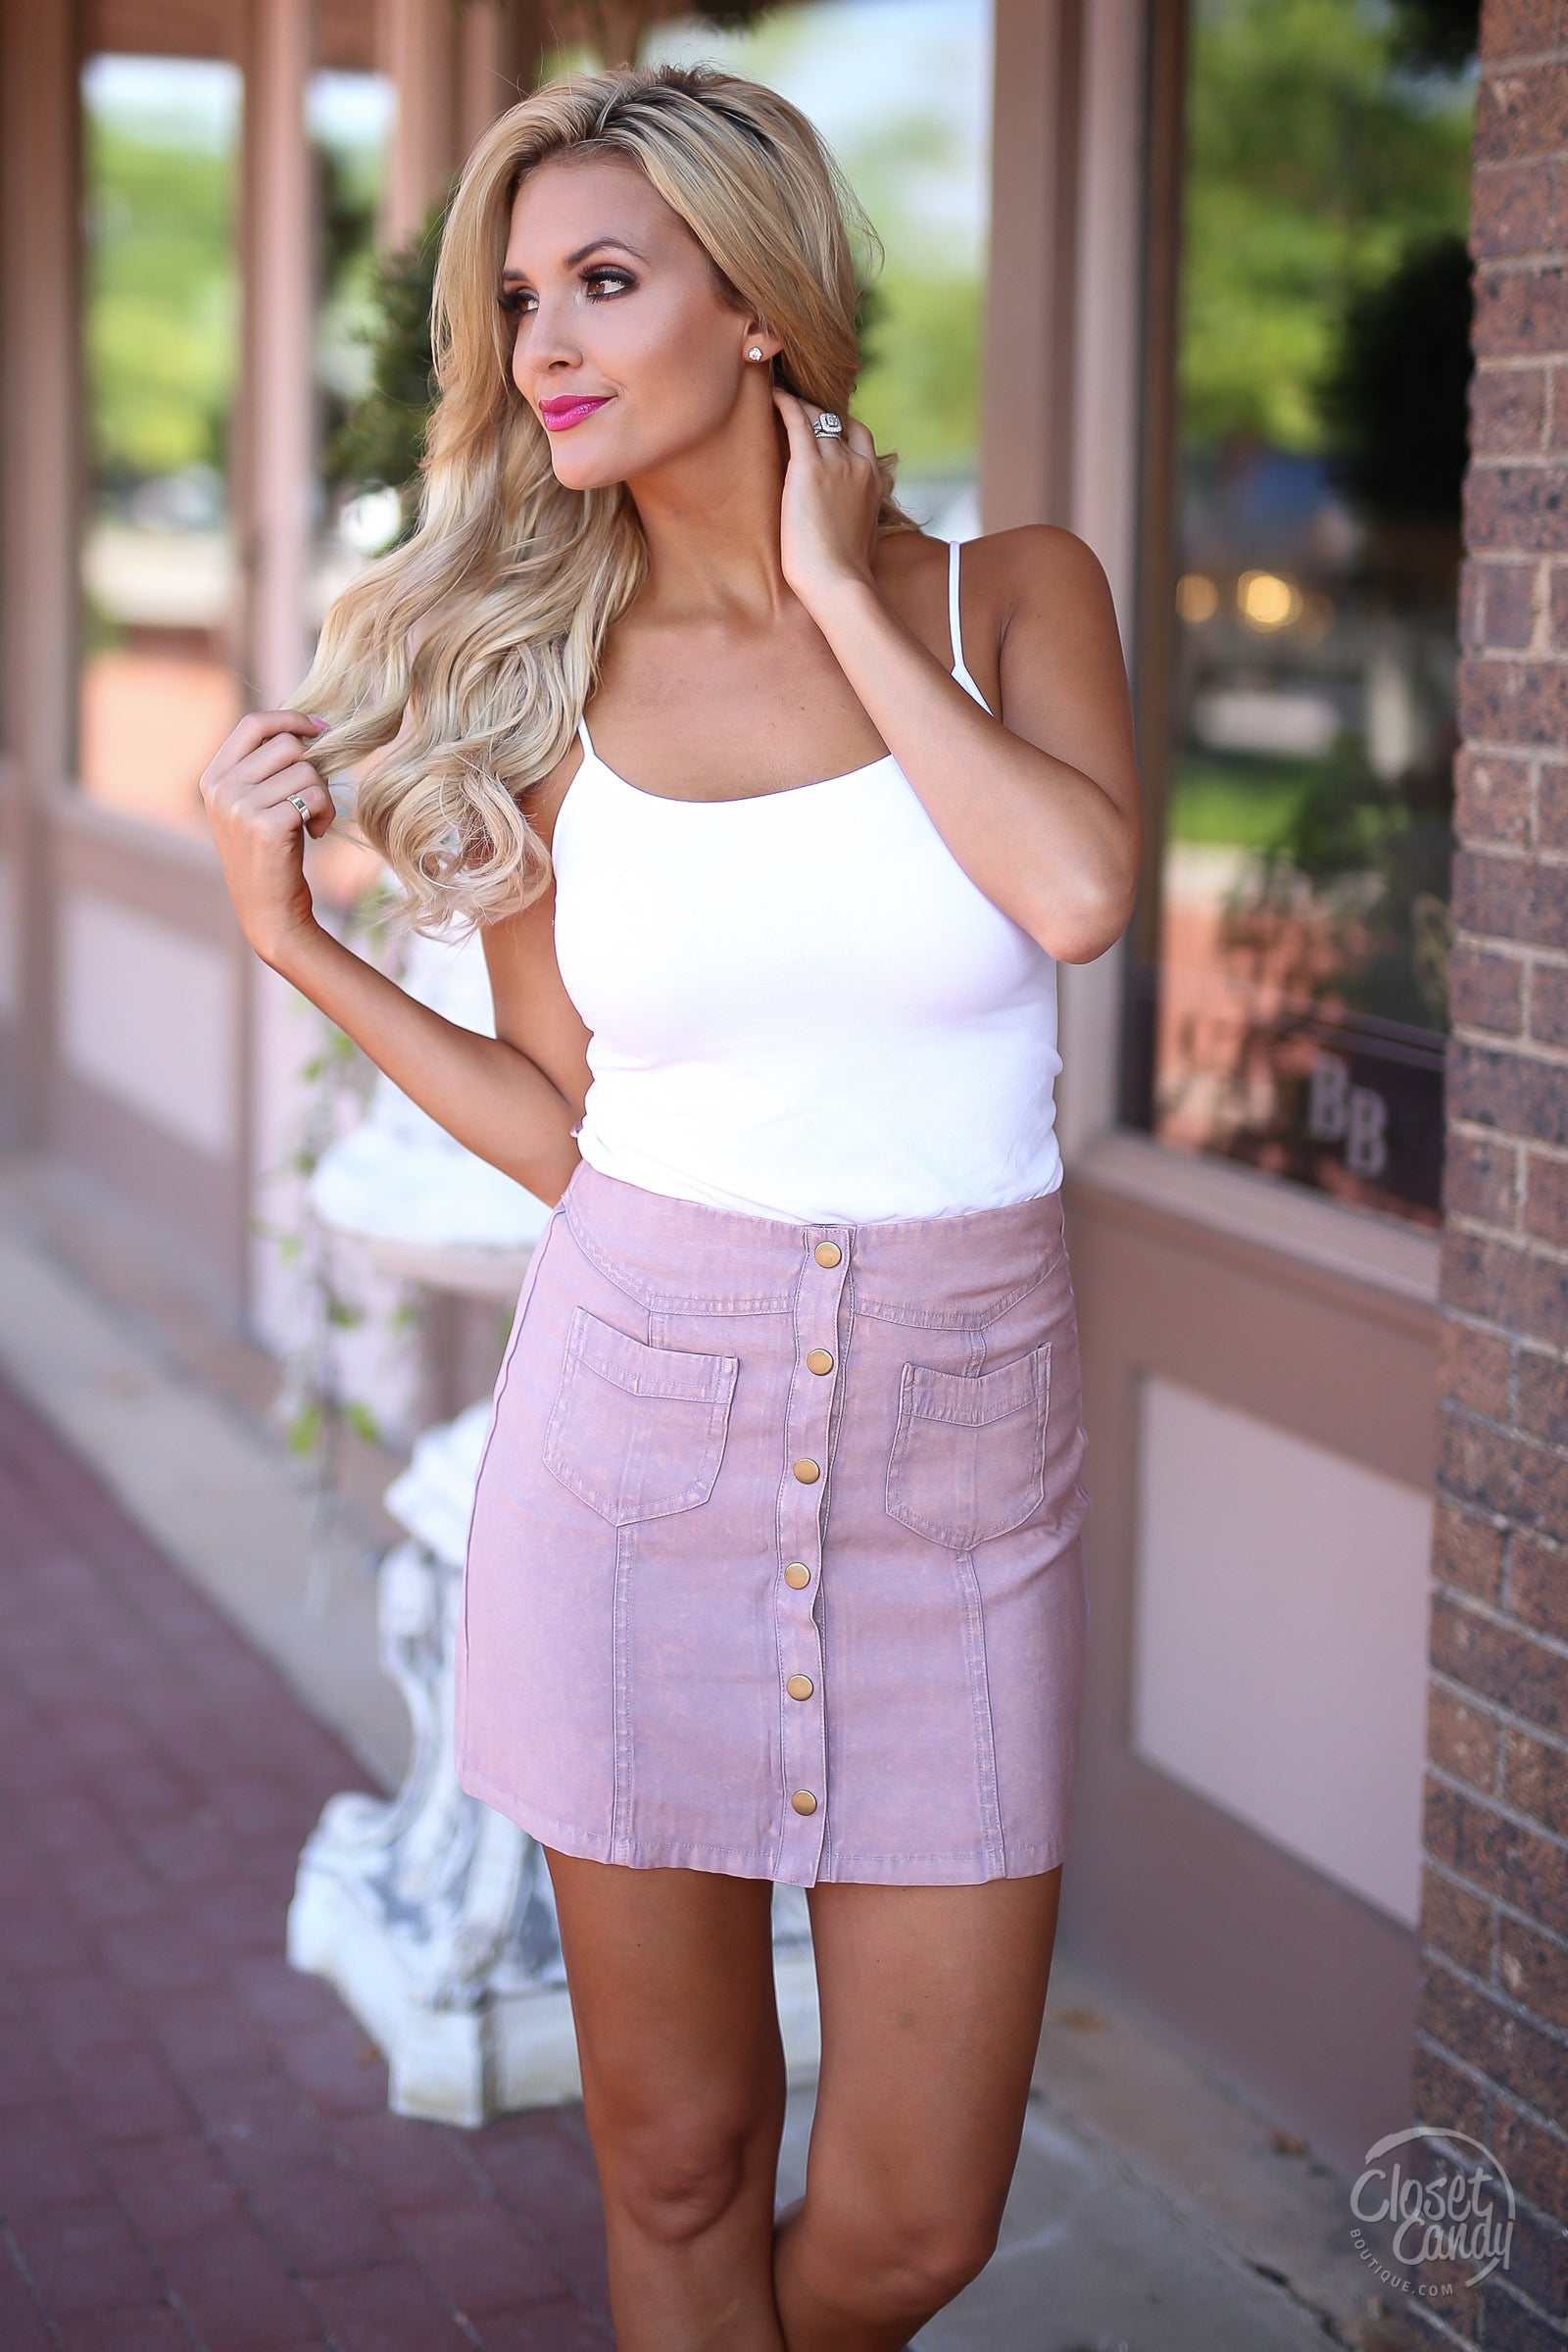 Images Of Candy Loving Minimalist loving feeling skirt - dusty rose - closet candy boutique